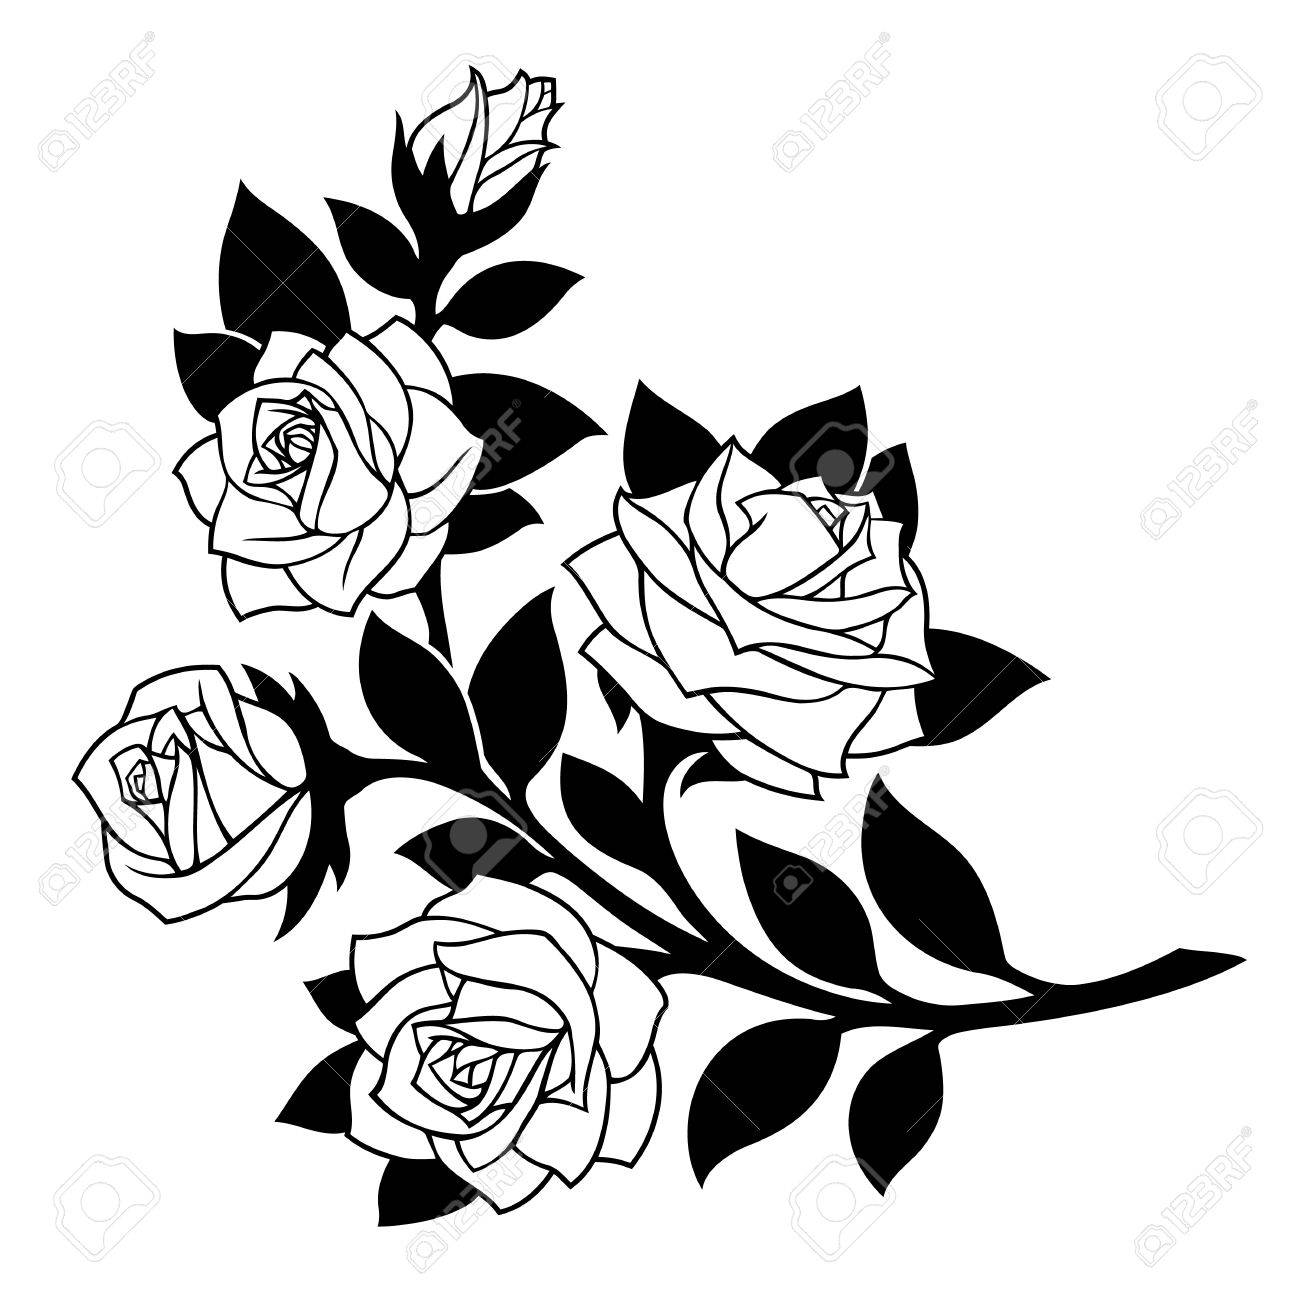 ce6041c3f Vector - vector illustration, decoration element, black rose branch with  white flowers